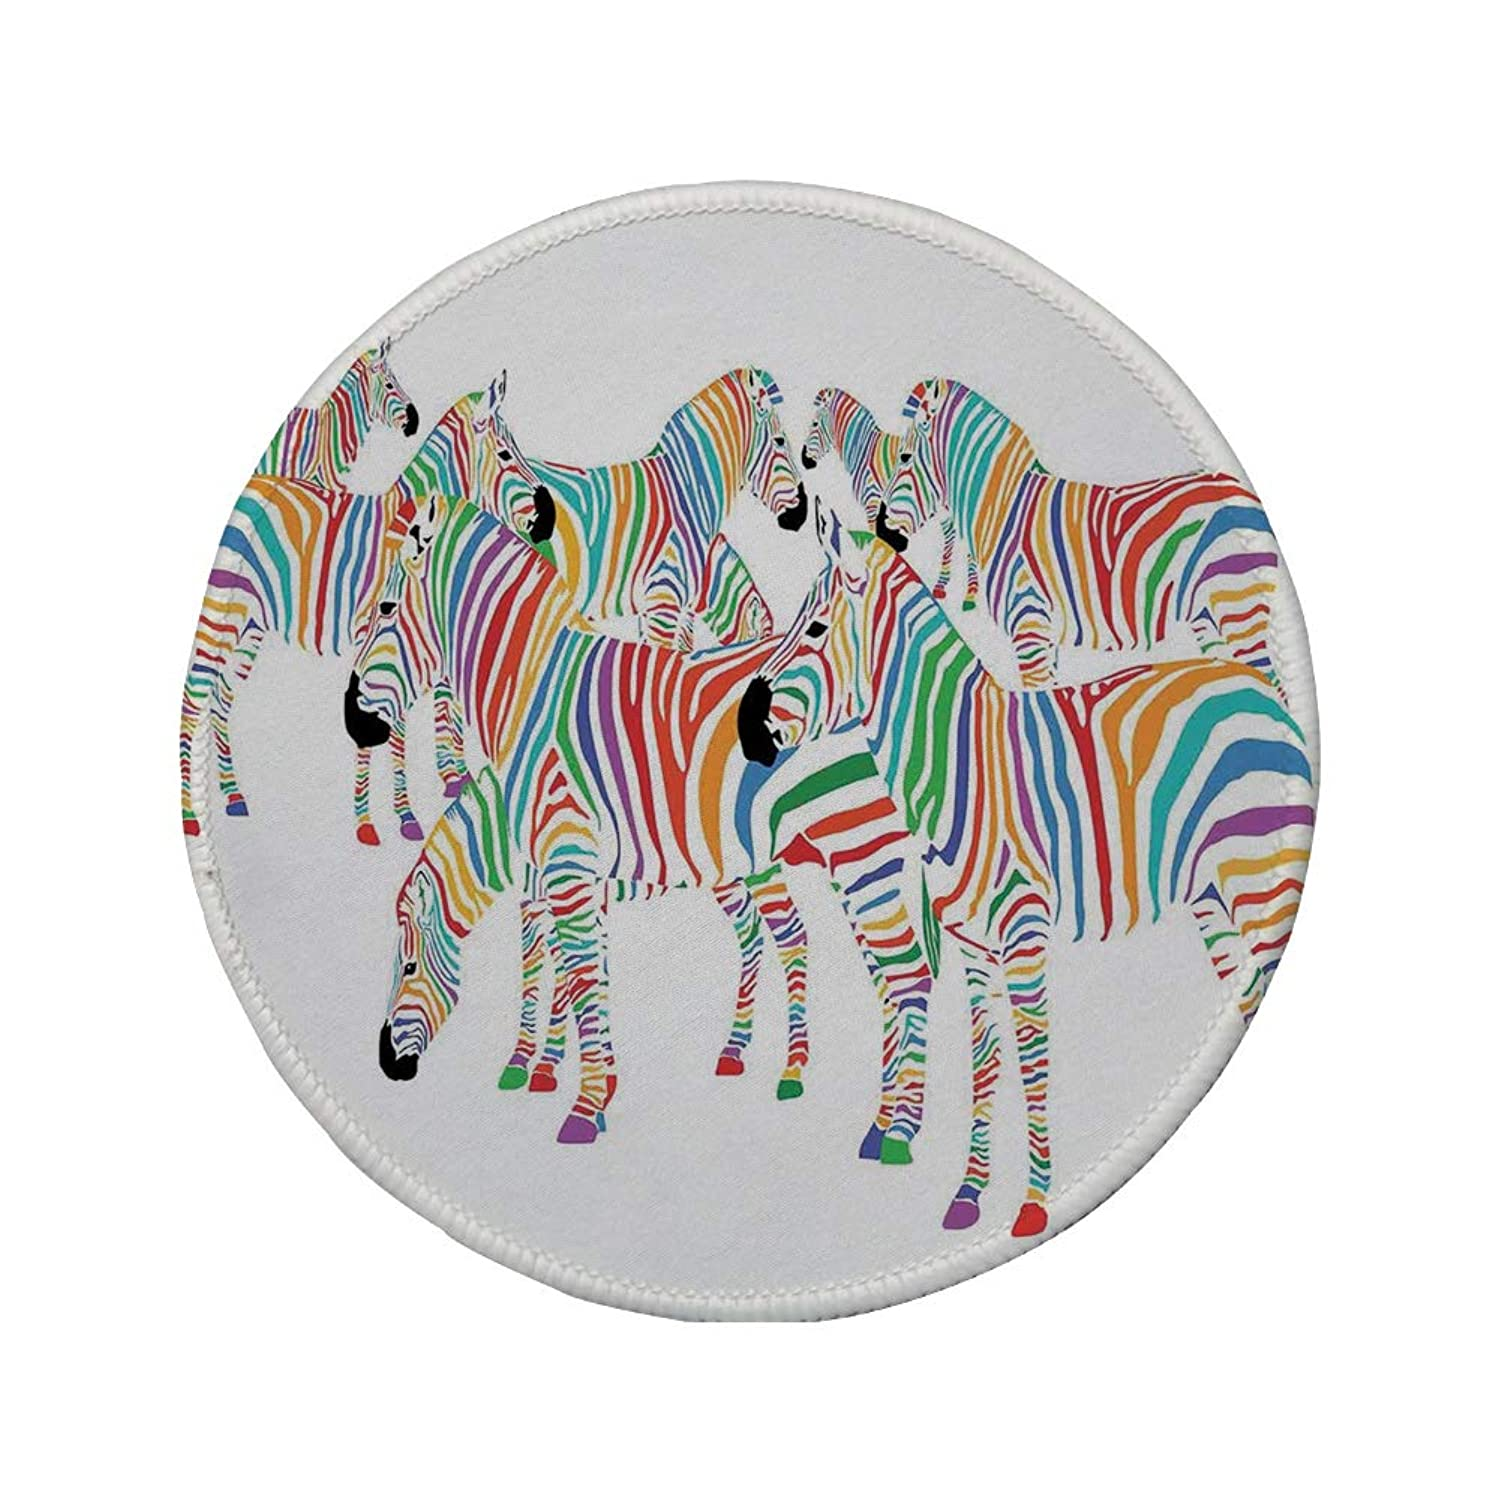 Non-Slip Rubber Round Mouse Pad,Funny,Colorful Cute Animal Herd with Rainbow Stripes Figure Digital Art Print Modern Safari,Multicolor,11.8